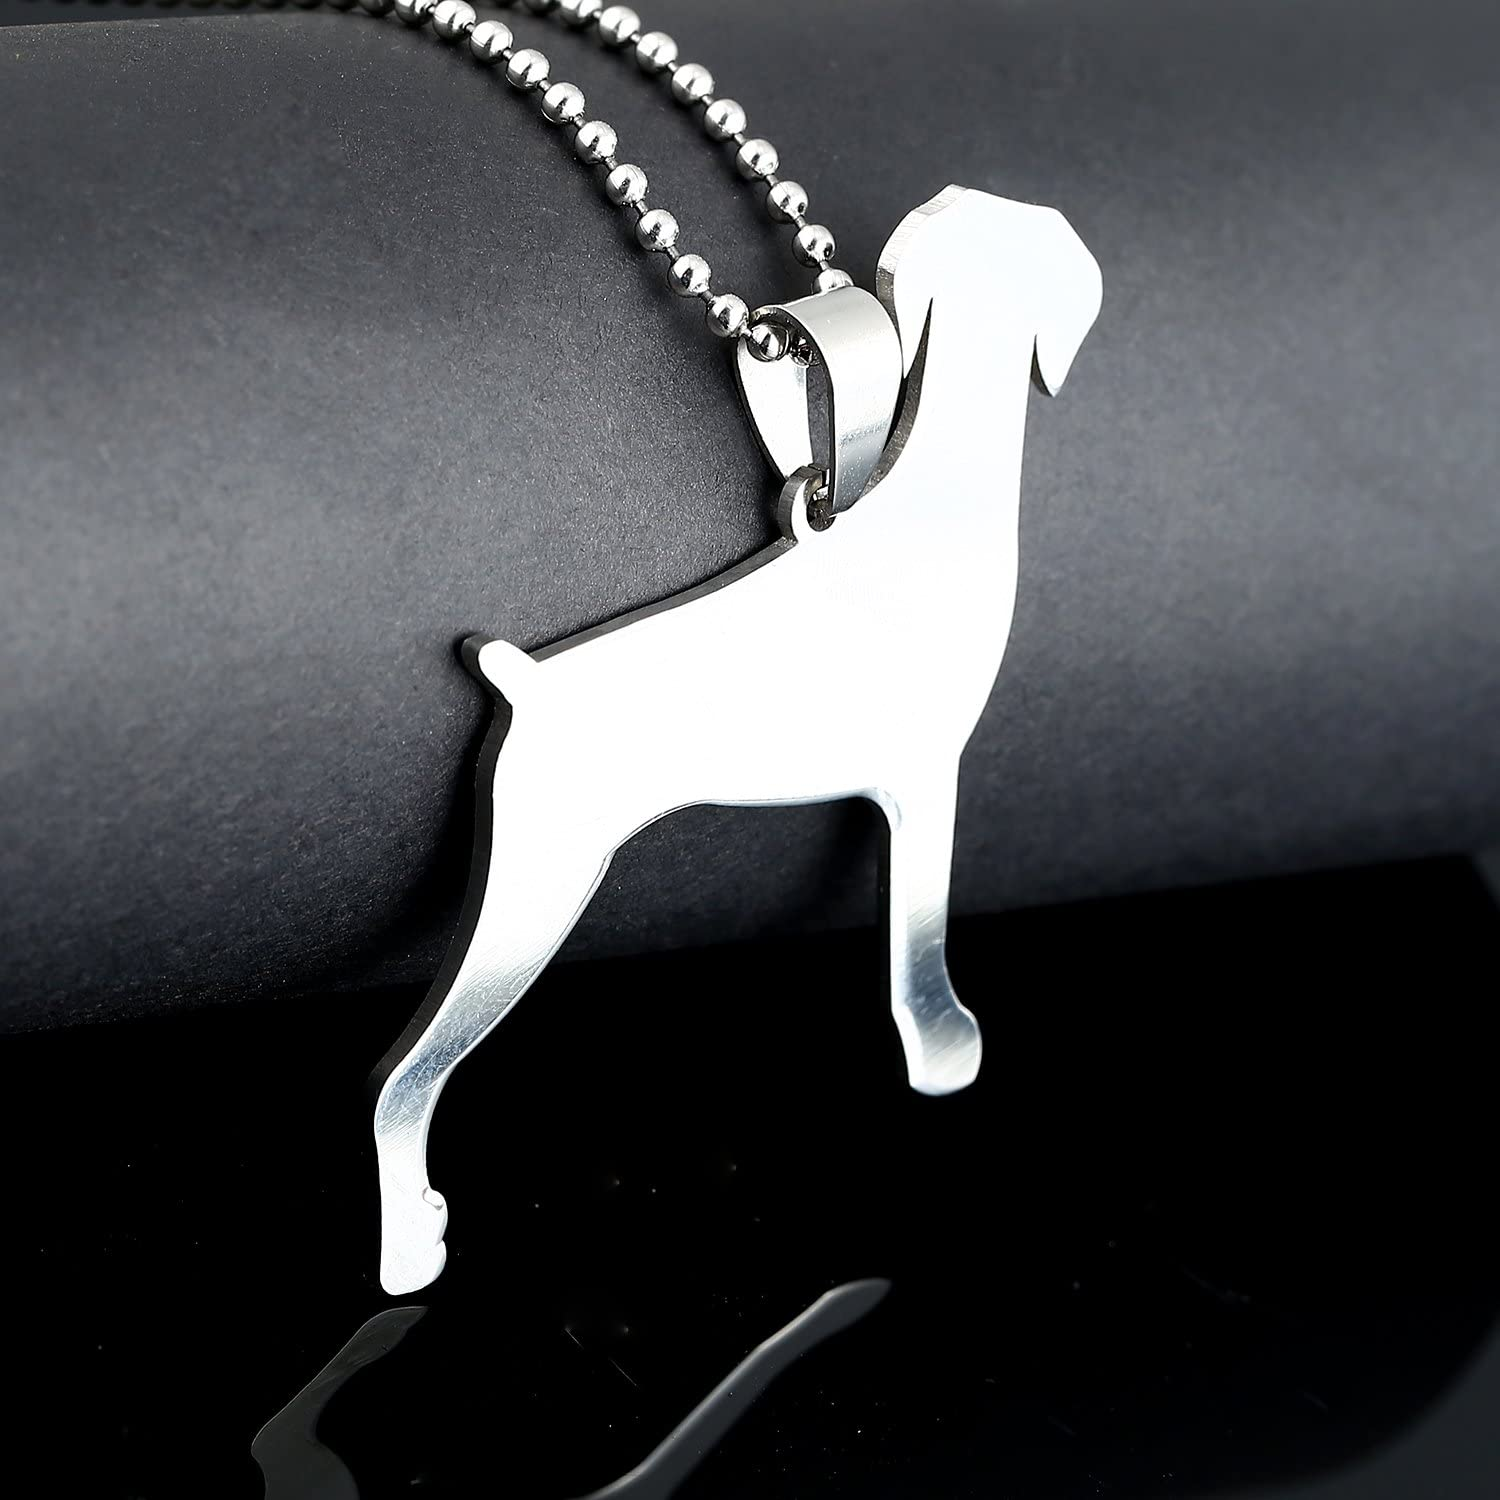 Big Size Stainless Steel Docked Tail Doberman Pinscher Dobie Dog Silhouette Pet Dog Tag Breed Collar Charm Pendant Necklace